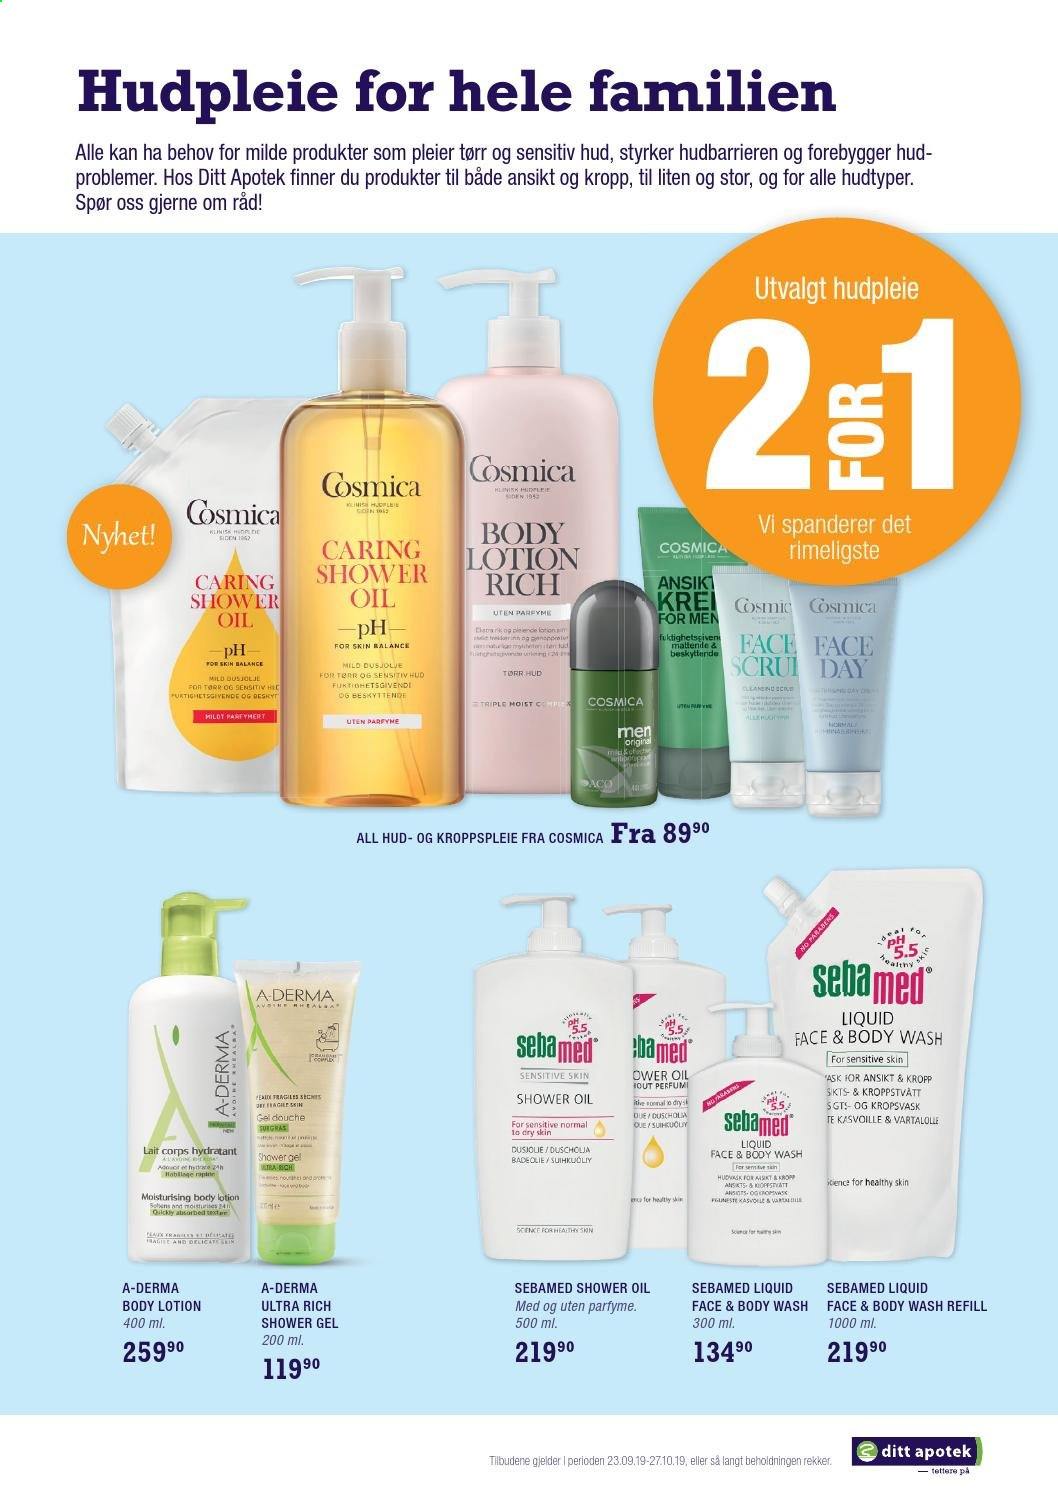 Kundeavis Ditt Apotek - 23.09.2019 - 27.10.2019 - Produkter fra tilbudsaviser - body lotion, body wash, shower gel, shower oil, cosmica. Side 3.